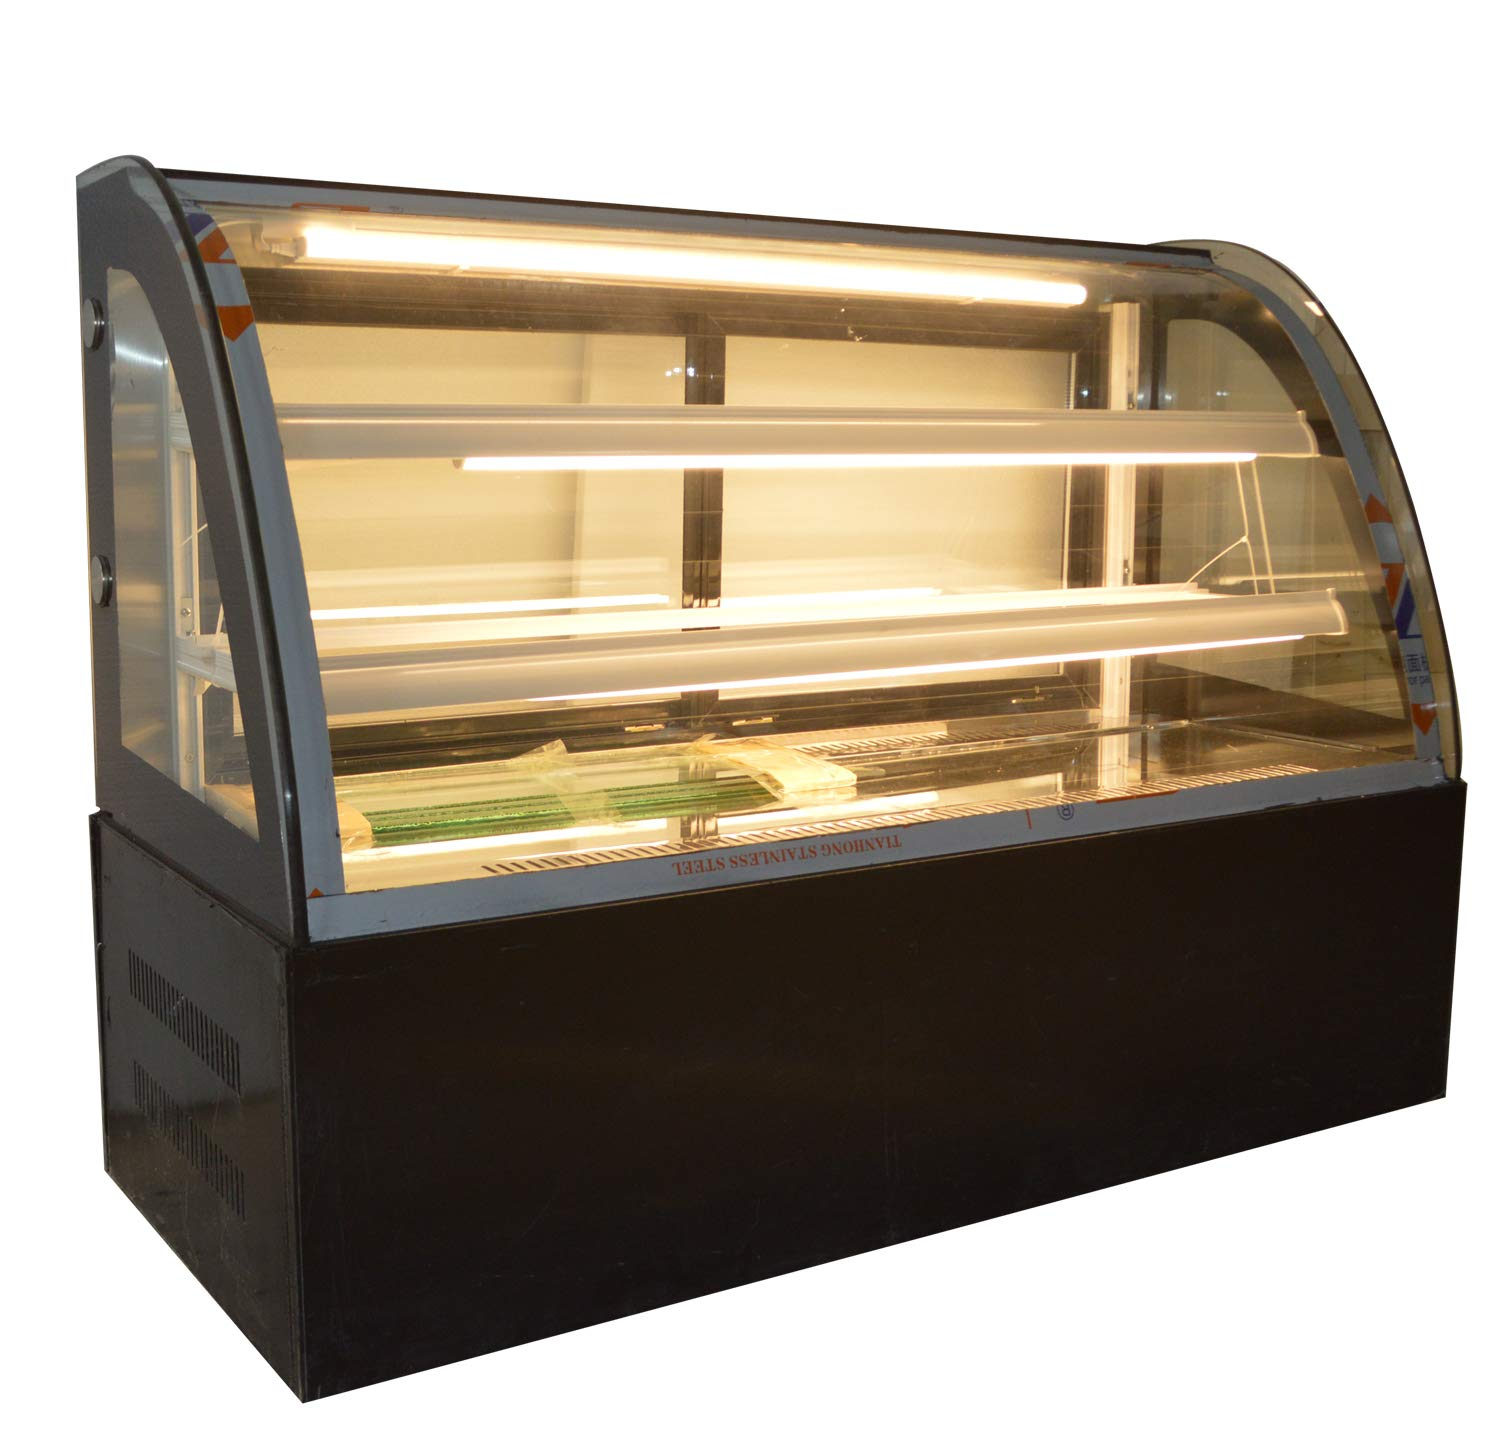 INTBUYING 47'' Countertop Bekery Cabinet Display Case Glass Refrigerated Cake Showcase 220V 315W 36-46F by INTBUYING (Image #1)